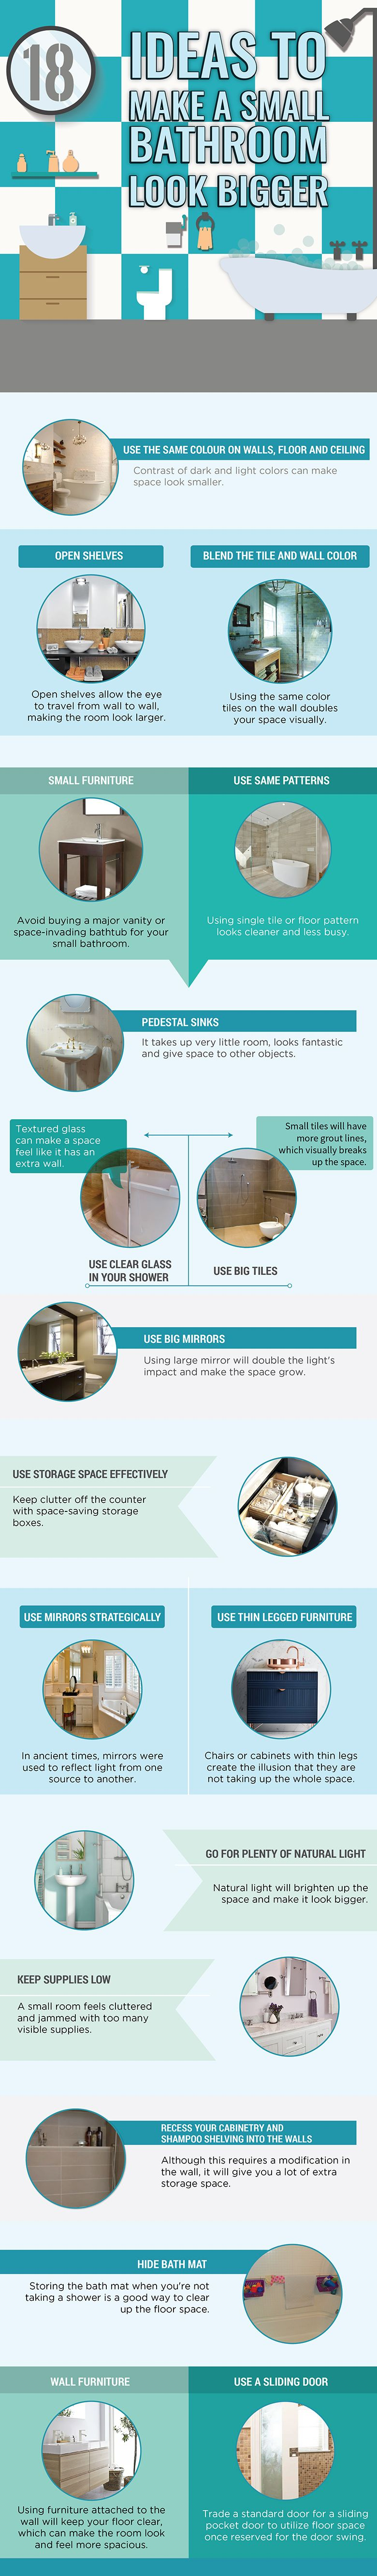 Make a Small Bathroom Bigger With These Effective Ideas #Infographic